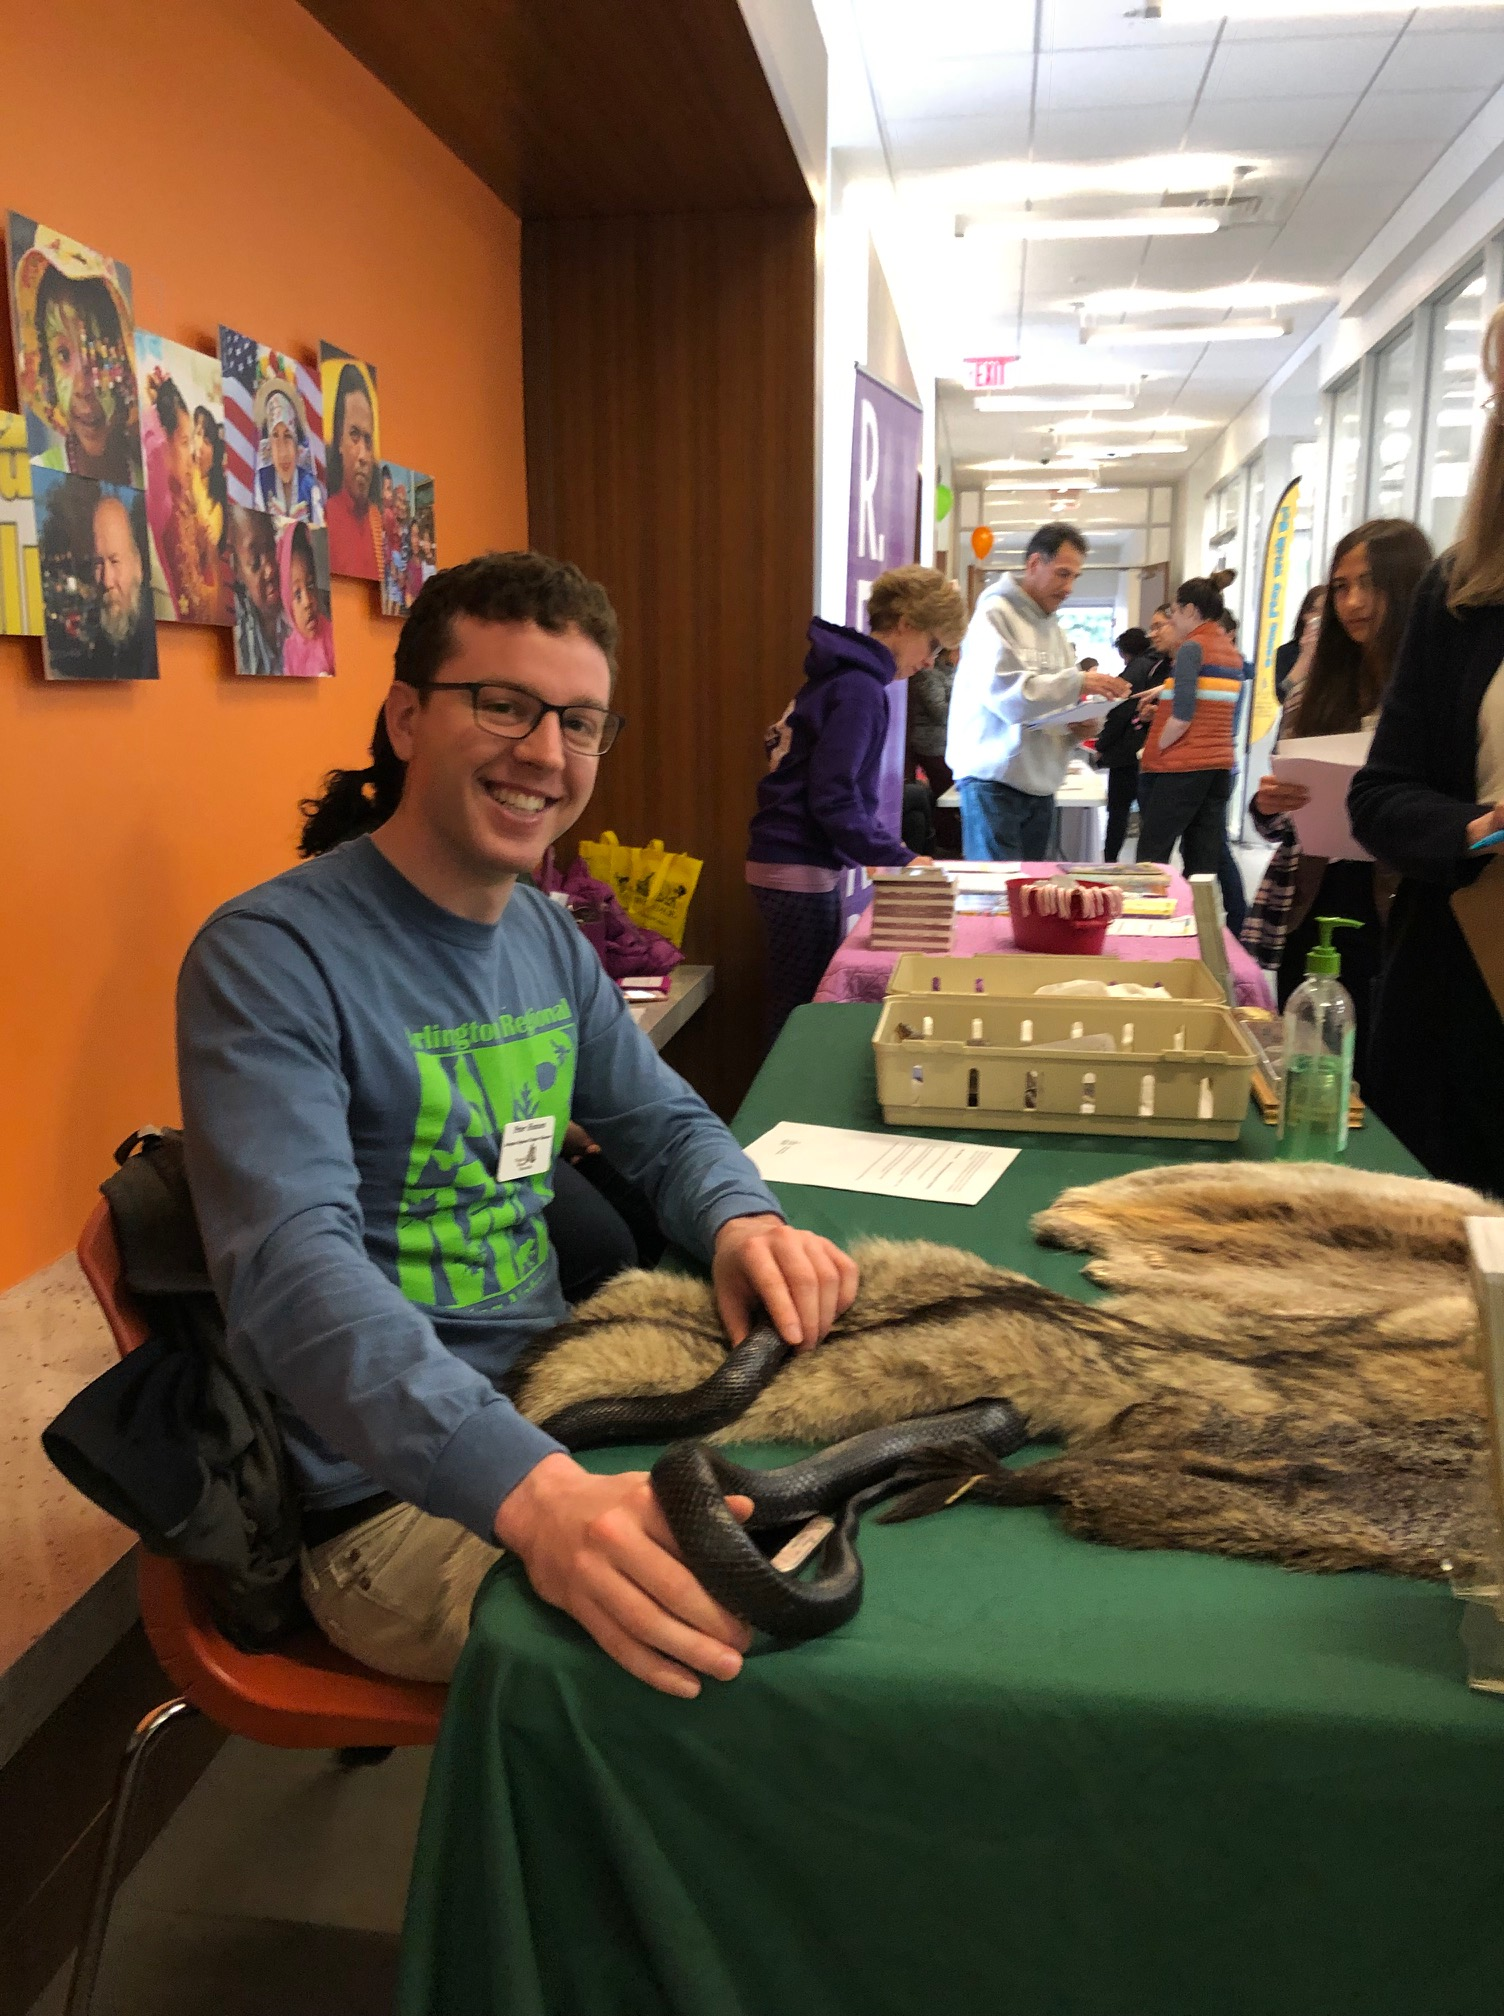 ARMN volunteer Peter sitting at a table holding a black snake while other volunteers stand behind him.